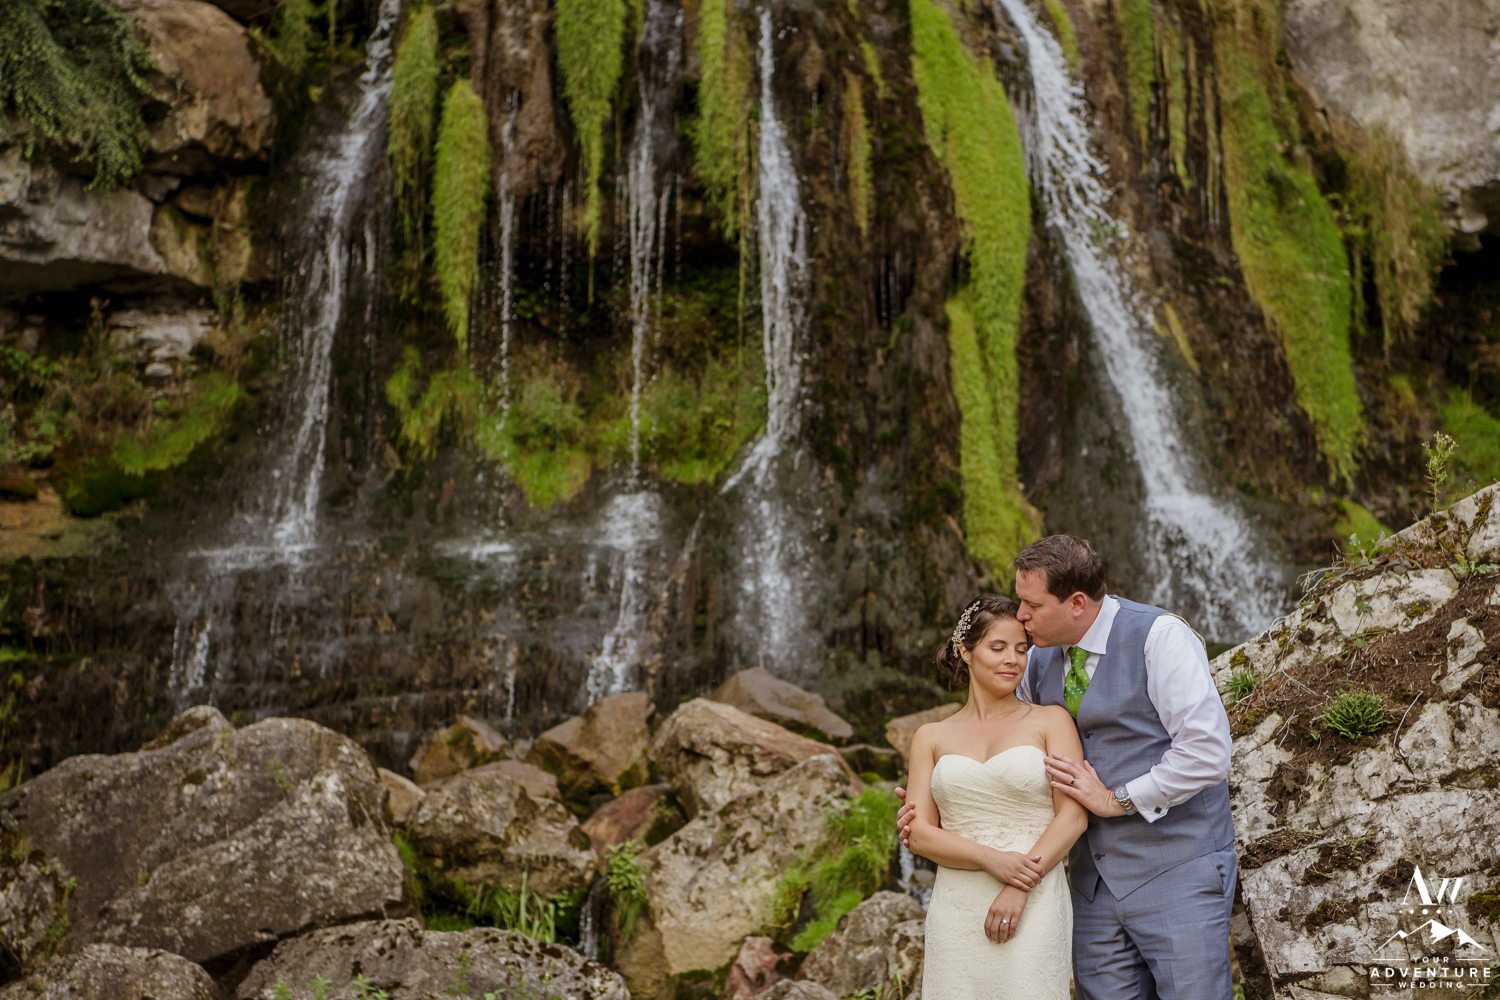 Couple Kissing outside of waterfall at st beatus caves switzerland